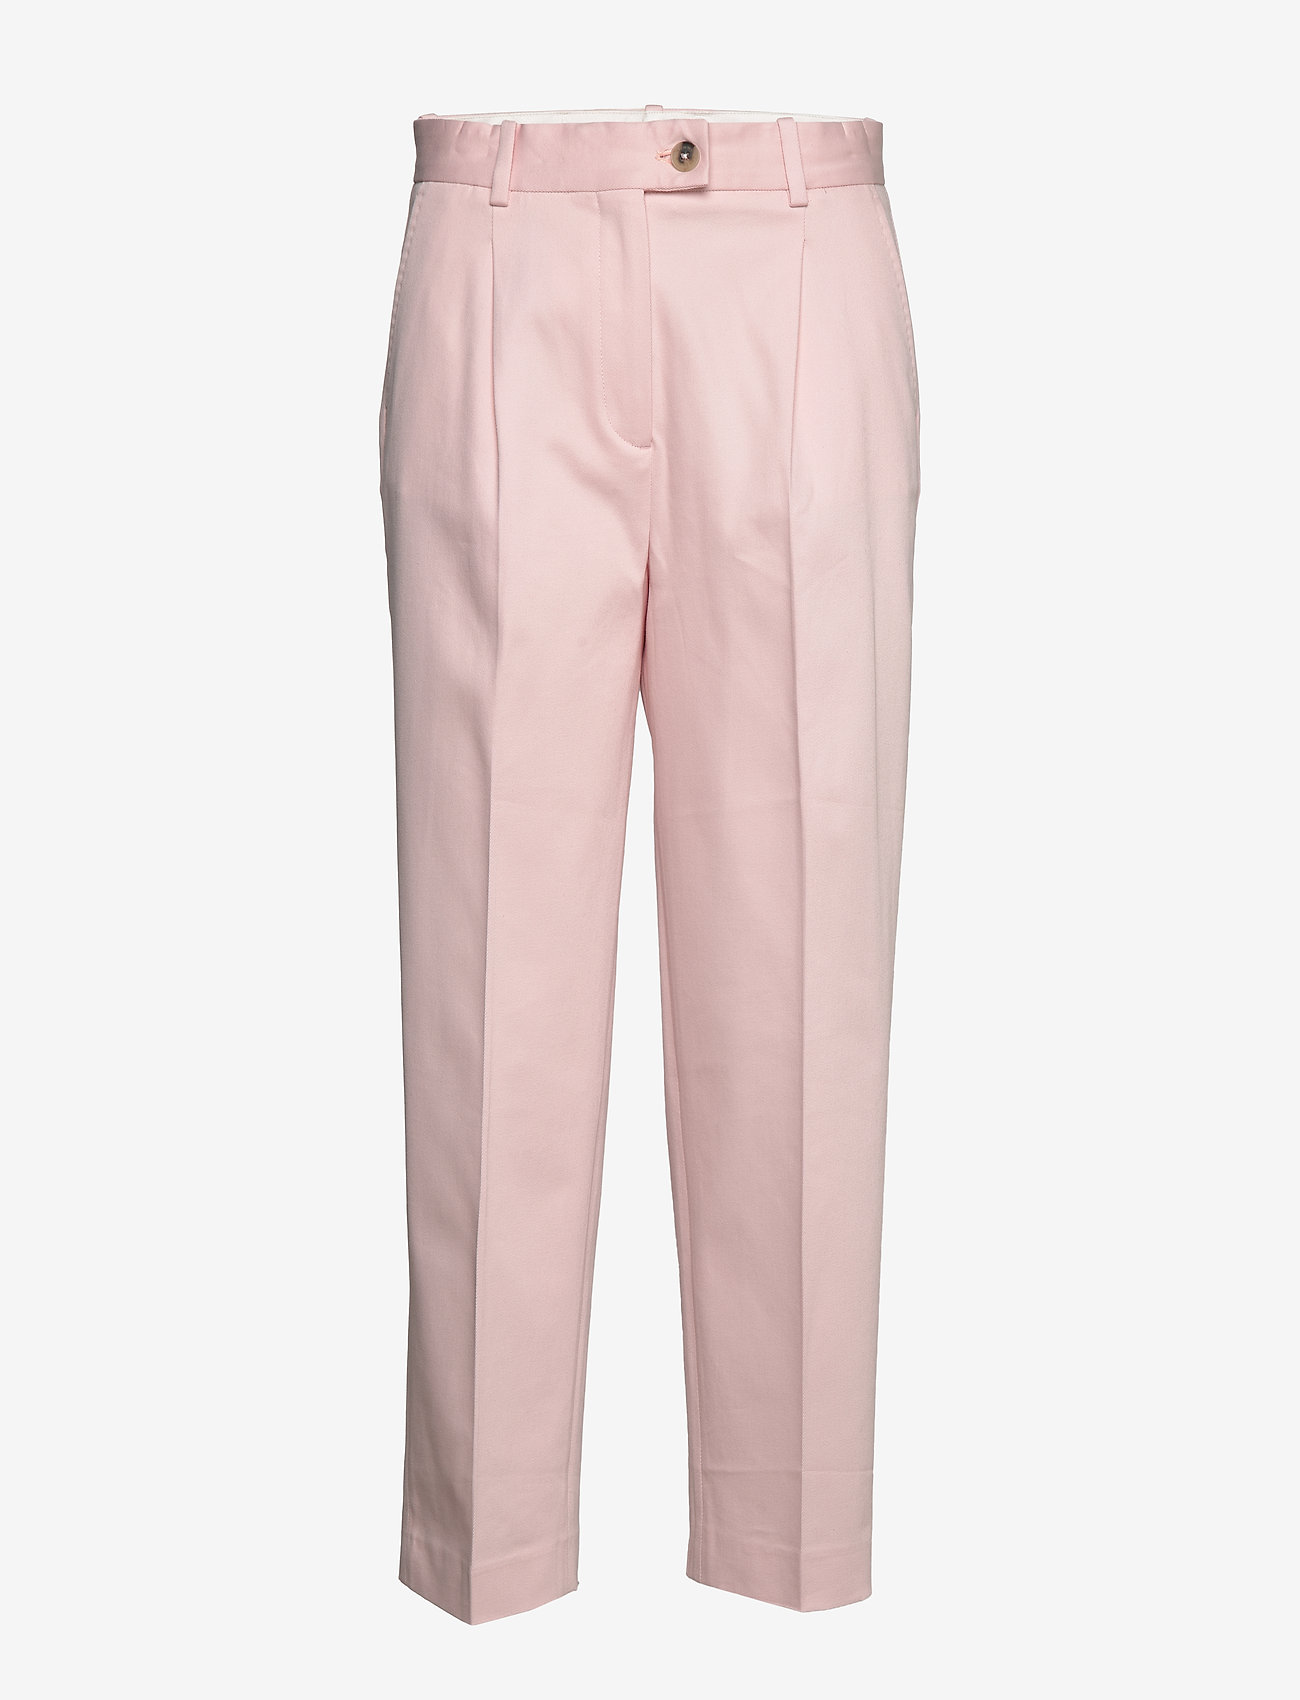 Tommy Hilfiger - COTTON PASTEL TAPERED PANT - straight leg trousers - pale pink - 0